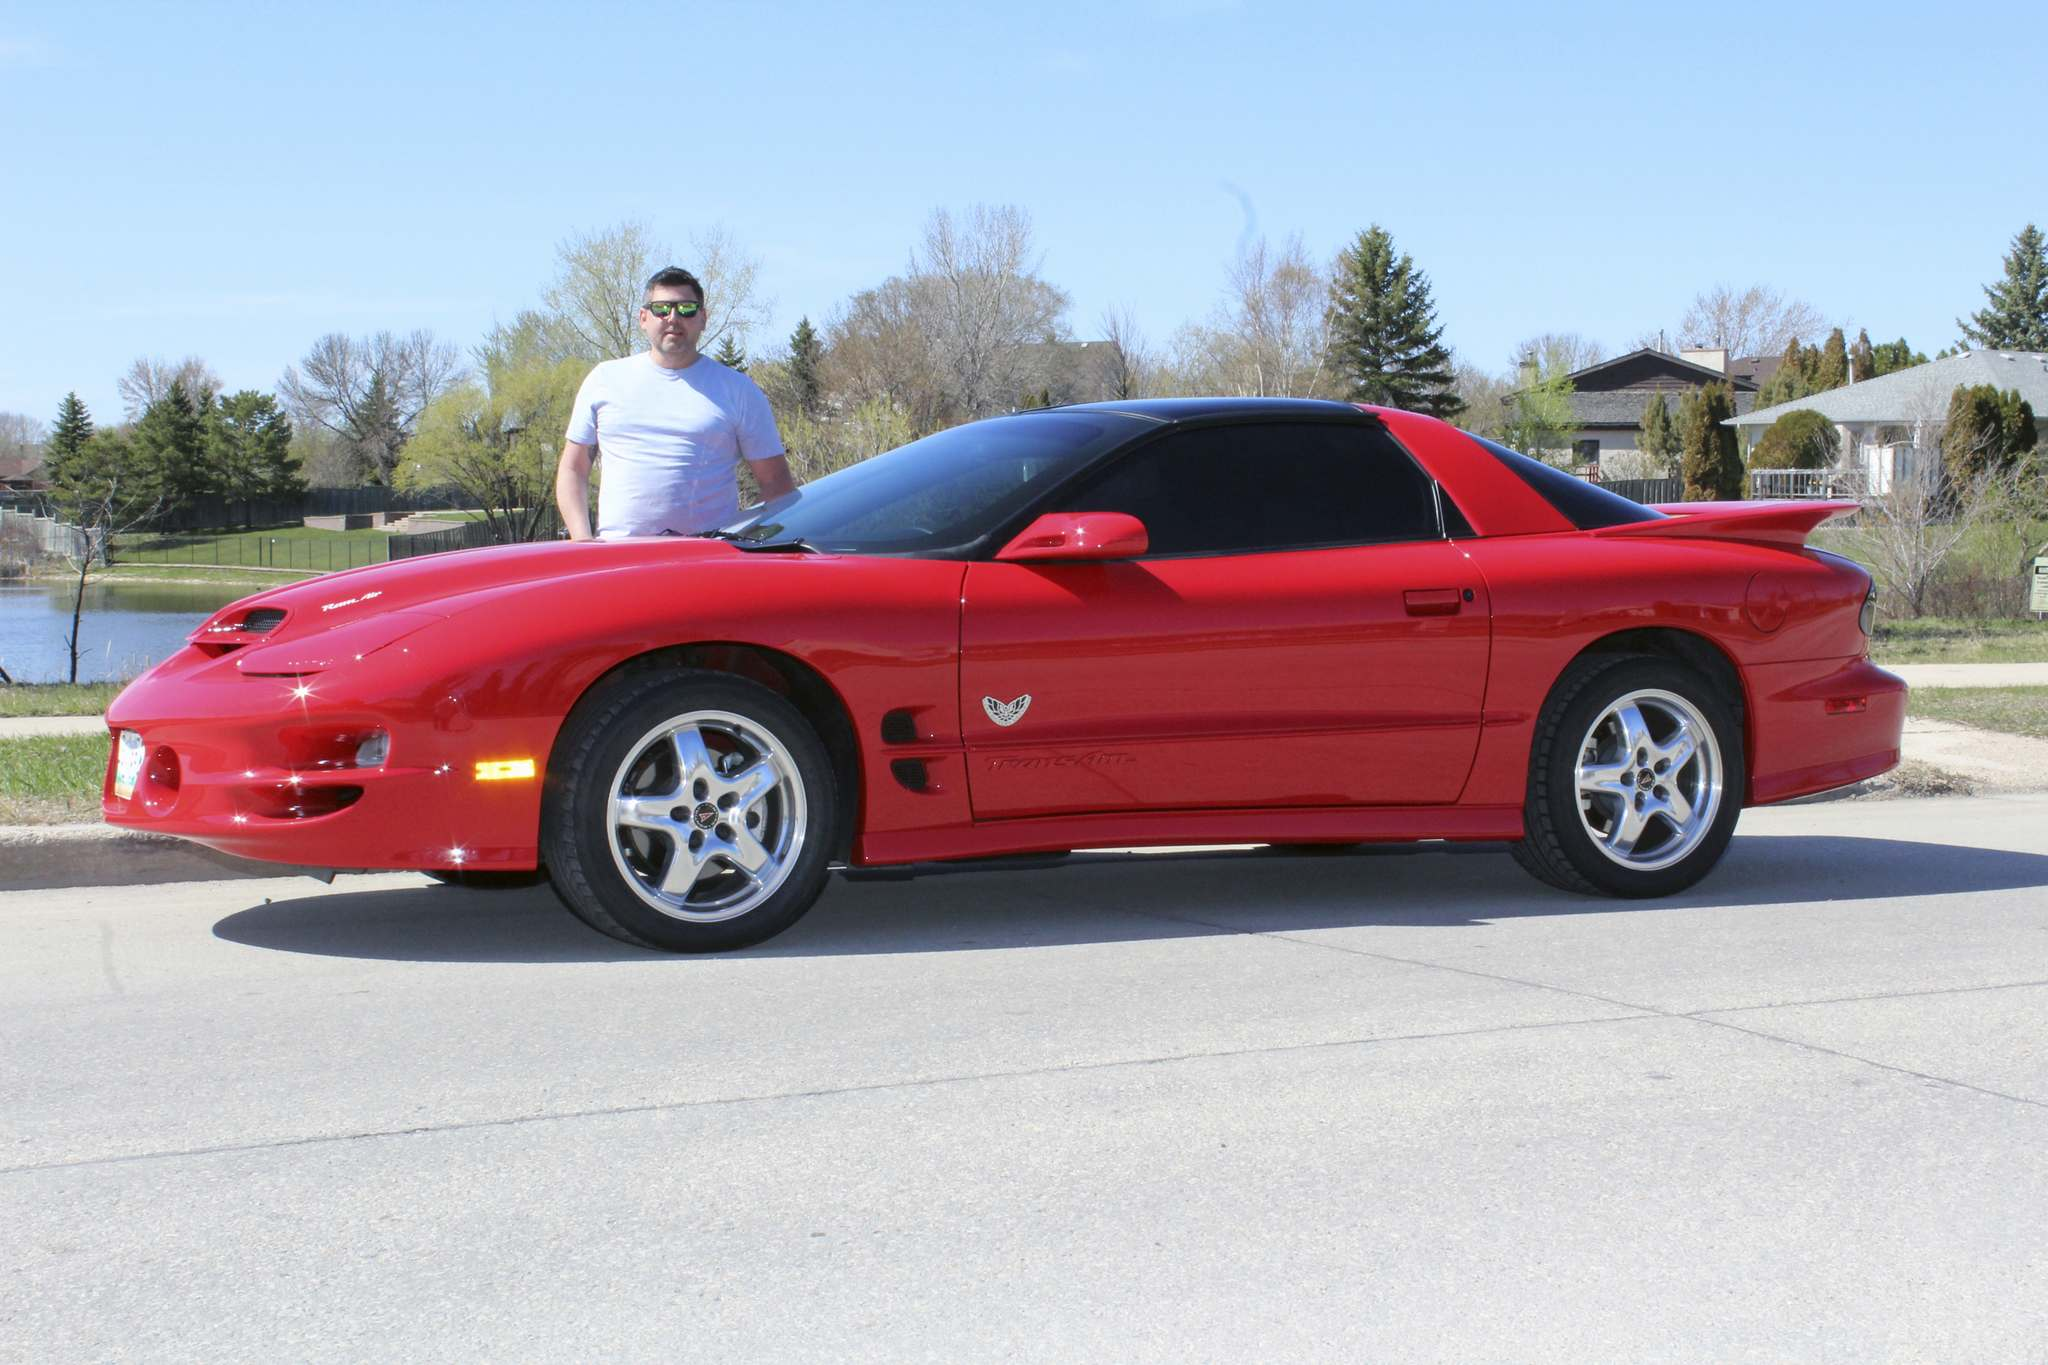 Photos by Larry D'Argis / Winnipeg Free PressDan Labossiere spotted his dream Trans Am while driving past West Perimeter Auto Sales on his way to view a Corvette he was considering buying.